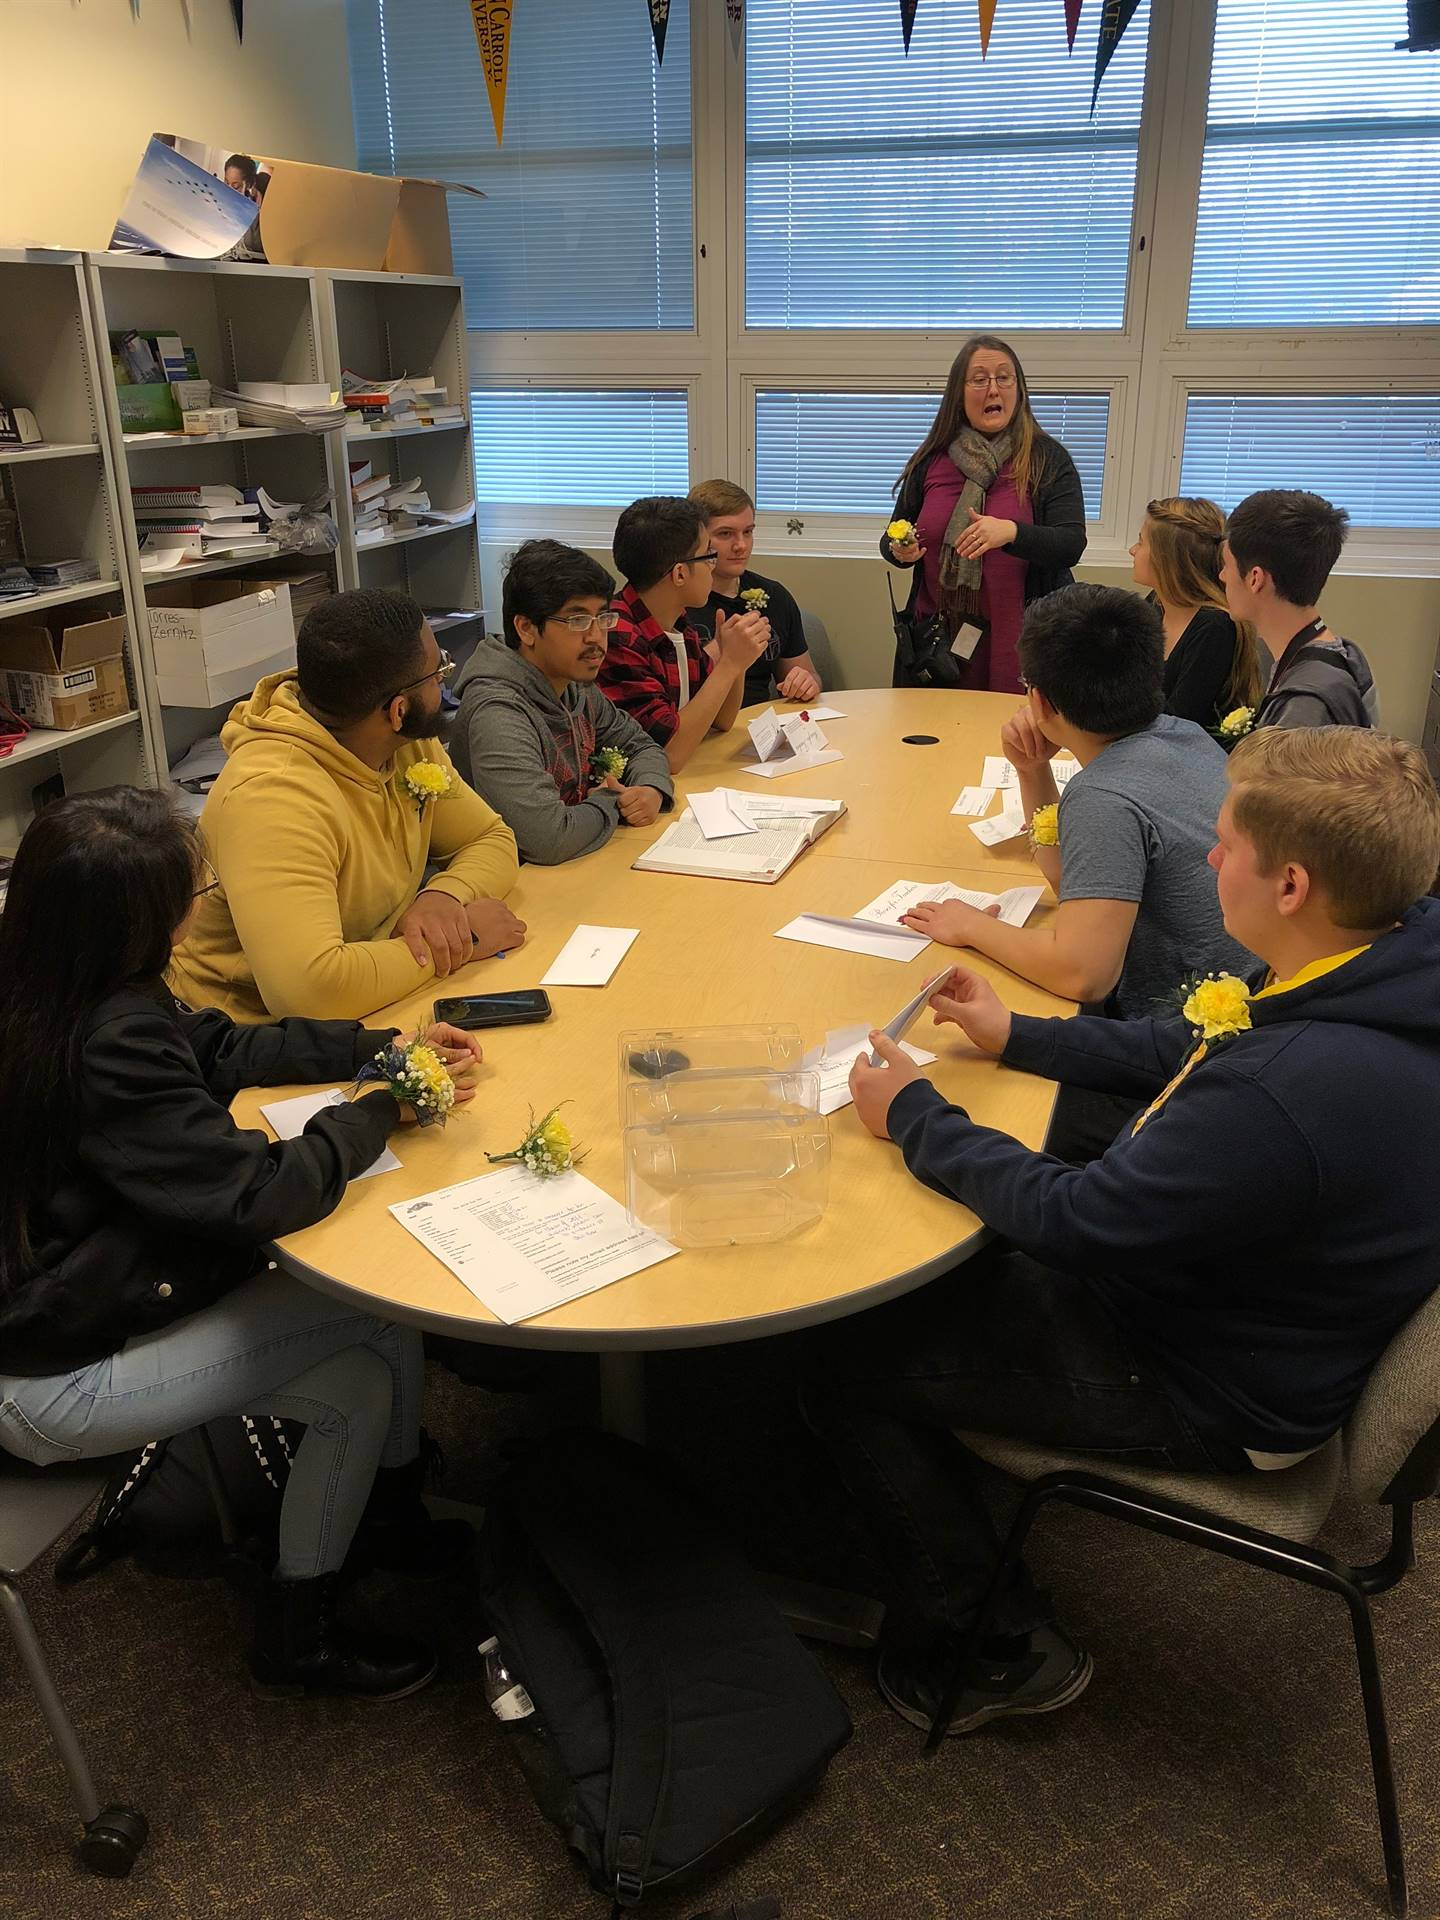 Top 10 students meeting with principal